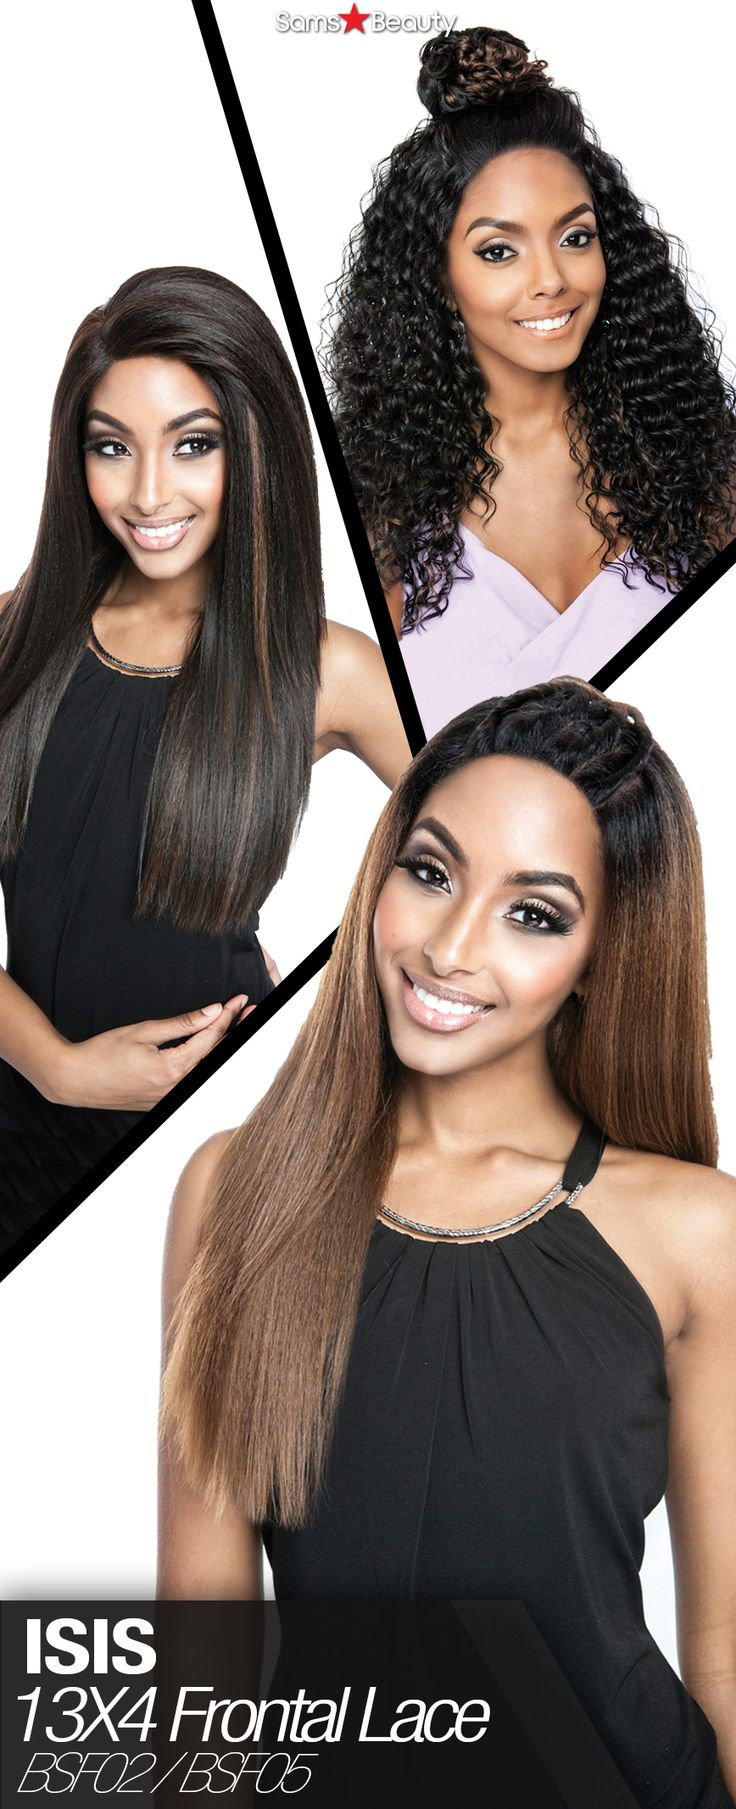 ISIS HUMAN HAIR BLEND LACE FRONT WIG BROWN SUGAR 13X4 FRONTAL LACE BSF02 (TOP) & BSF05 (MIDDLE & BOTTOM)  BSF05 - SAME PRICE✌️ #blackgirlmagic #blackgirlhair #hairstyle #lacewig #lacefrontwig #wig #beauty #trendyhair #hairinspiration